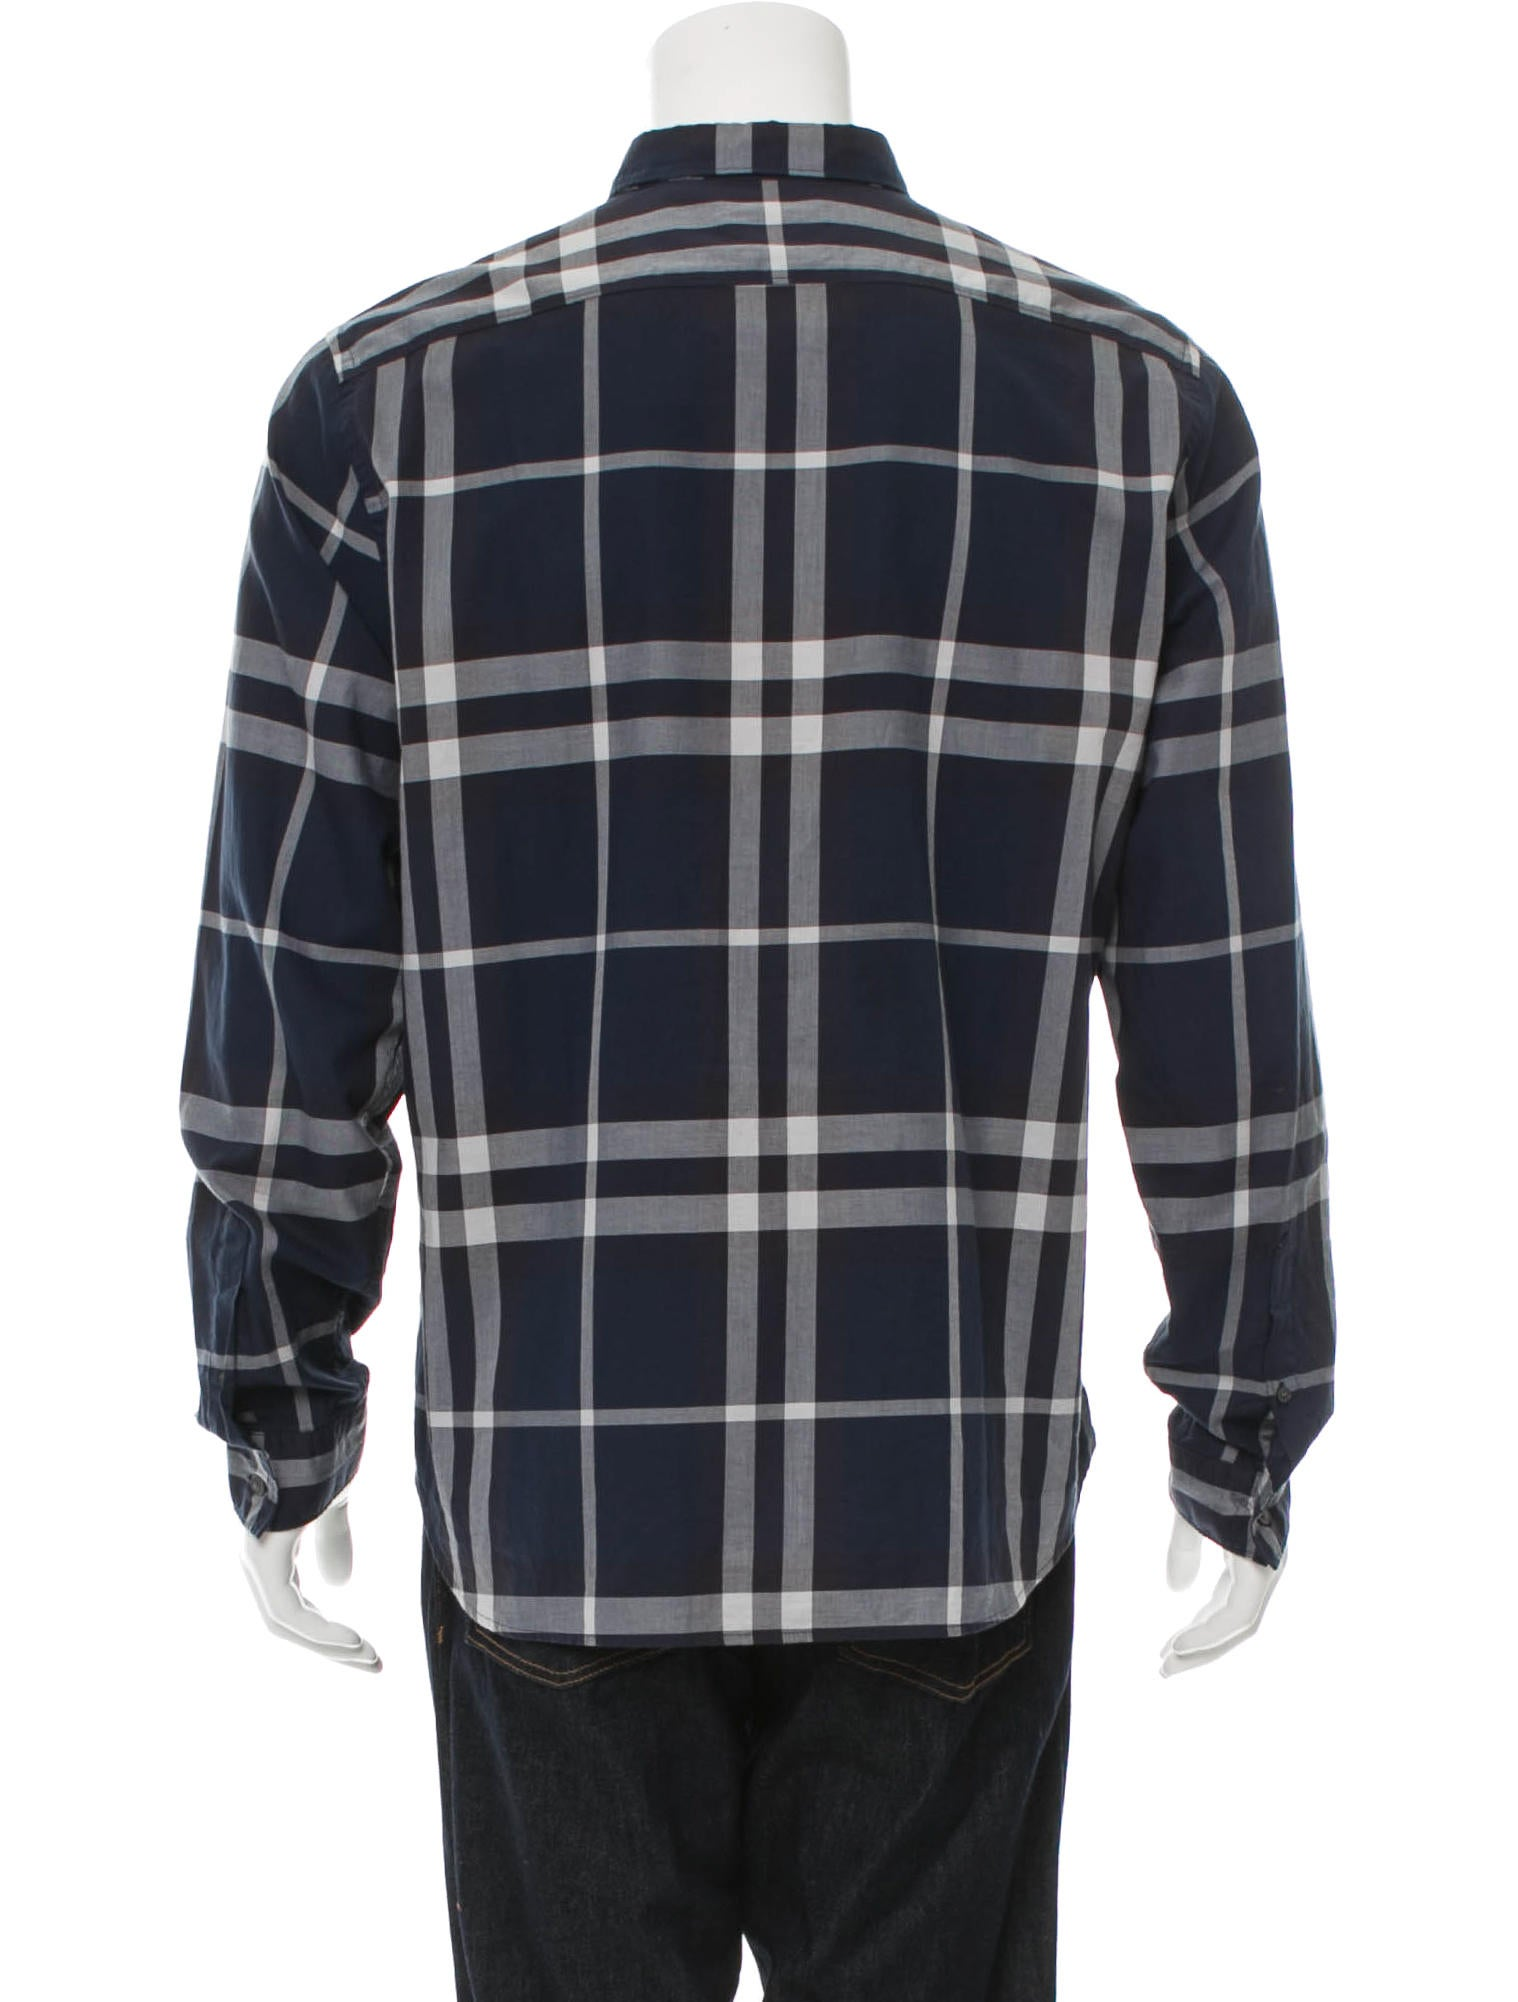 Burberry brit nova check button up shirt clothing for Burberry brit checked shirt